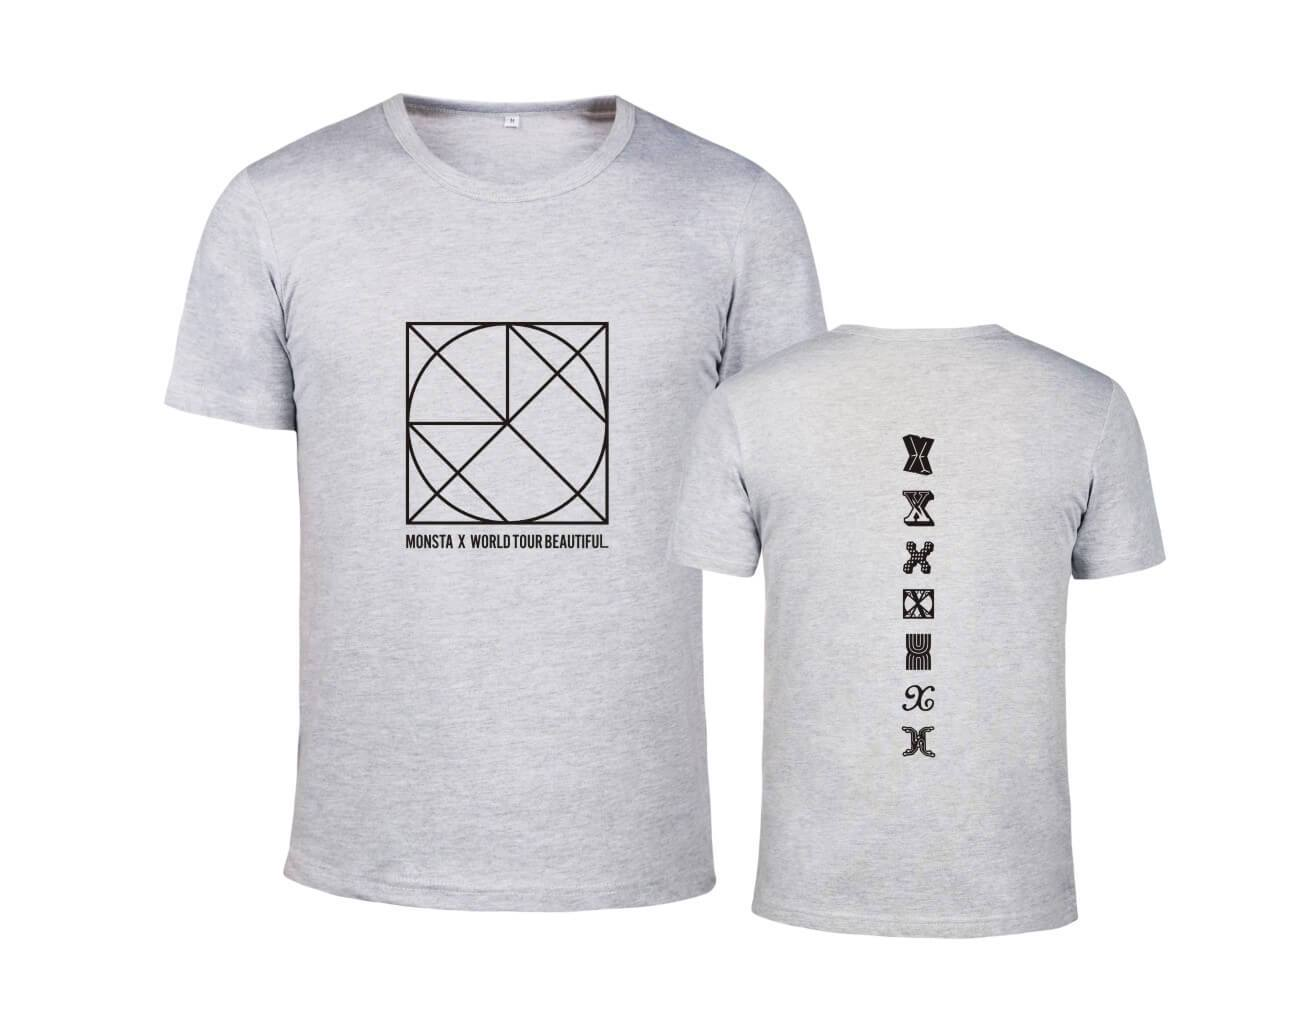 MONSTA X BE BEAUTIFUL Concert Printed T-shirt